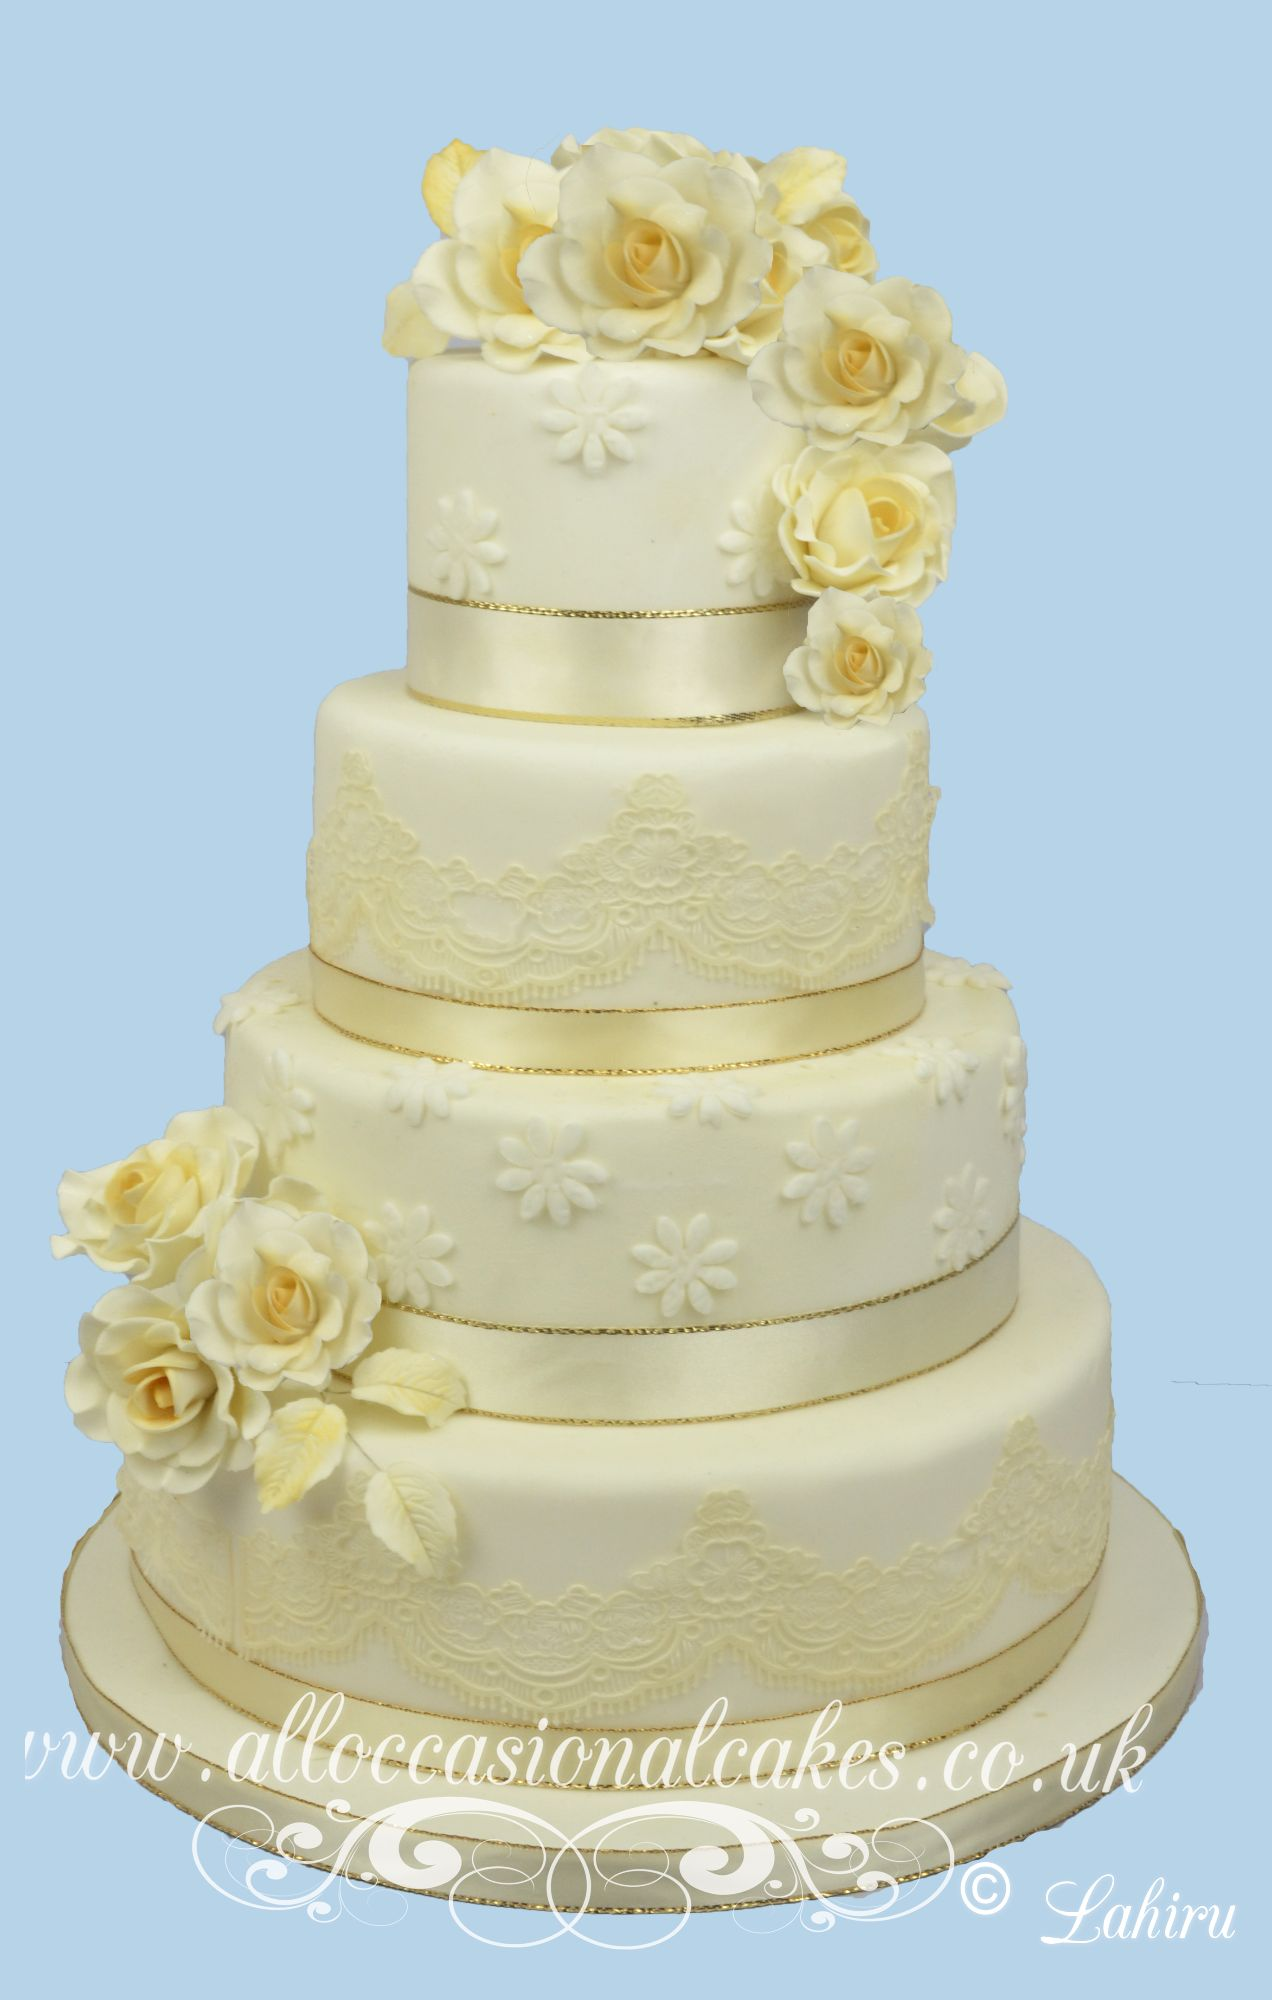 Ruby rose cascade wedding cake bristol